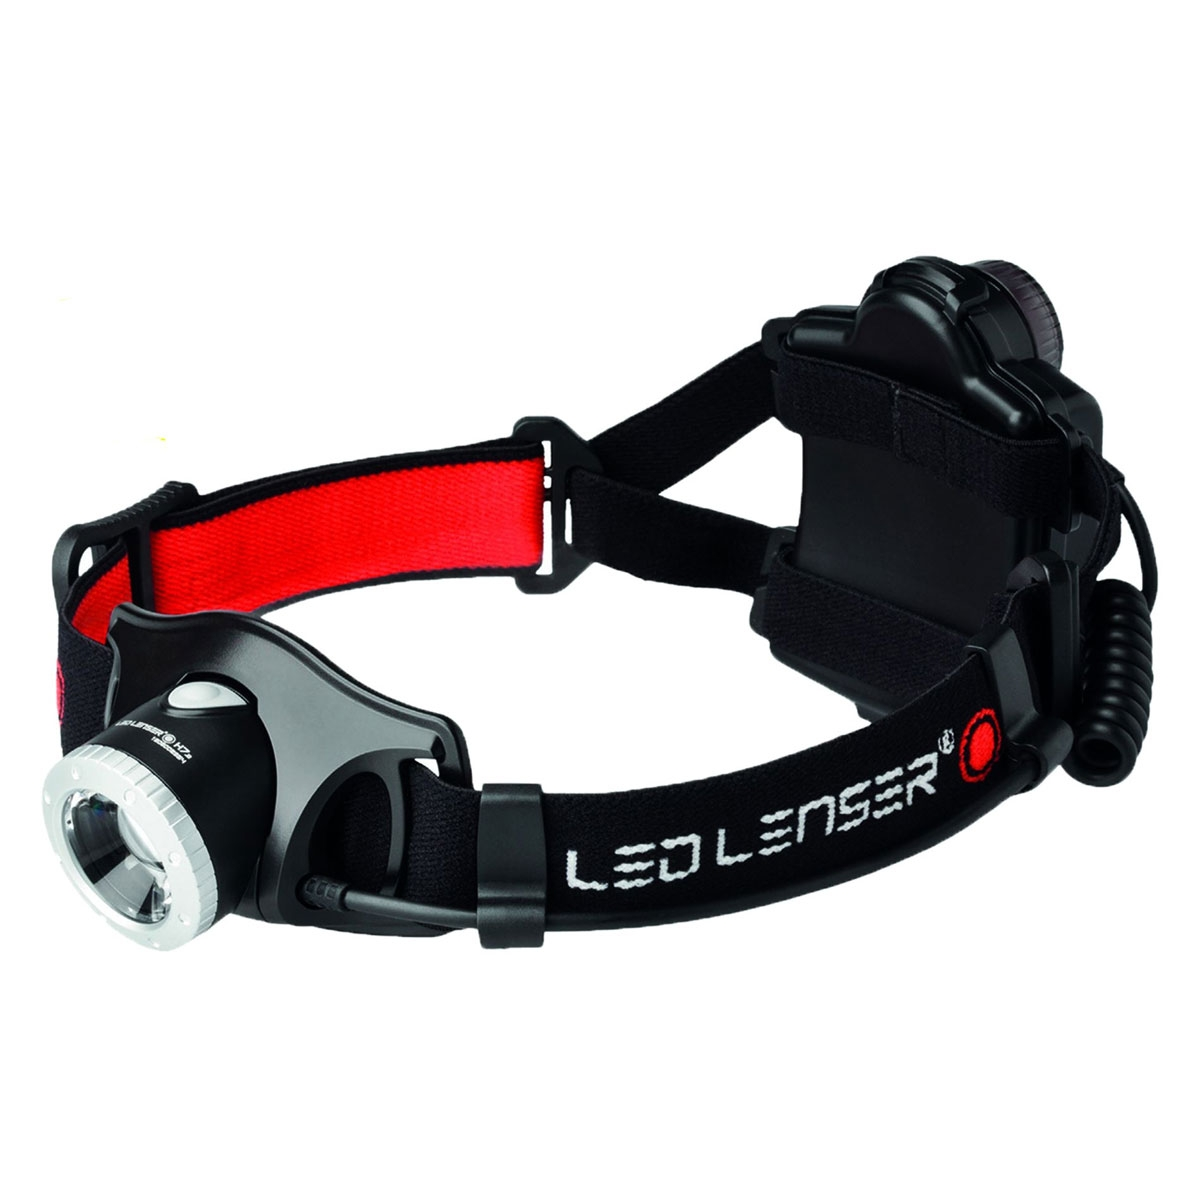 LED Lenser H7R.2 Rechargeable Head Torch